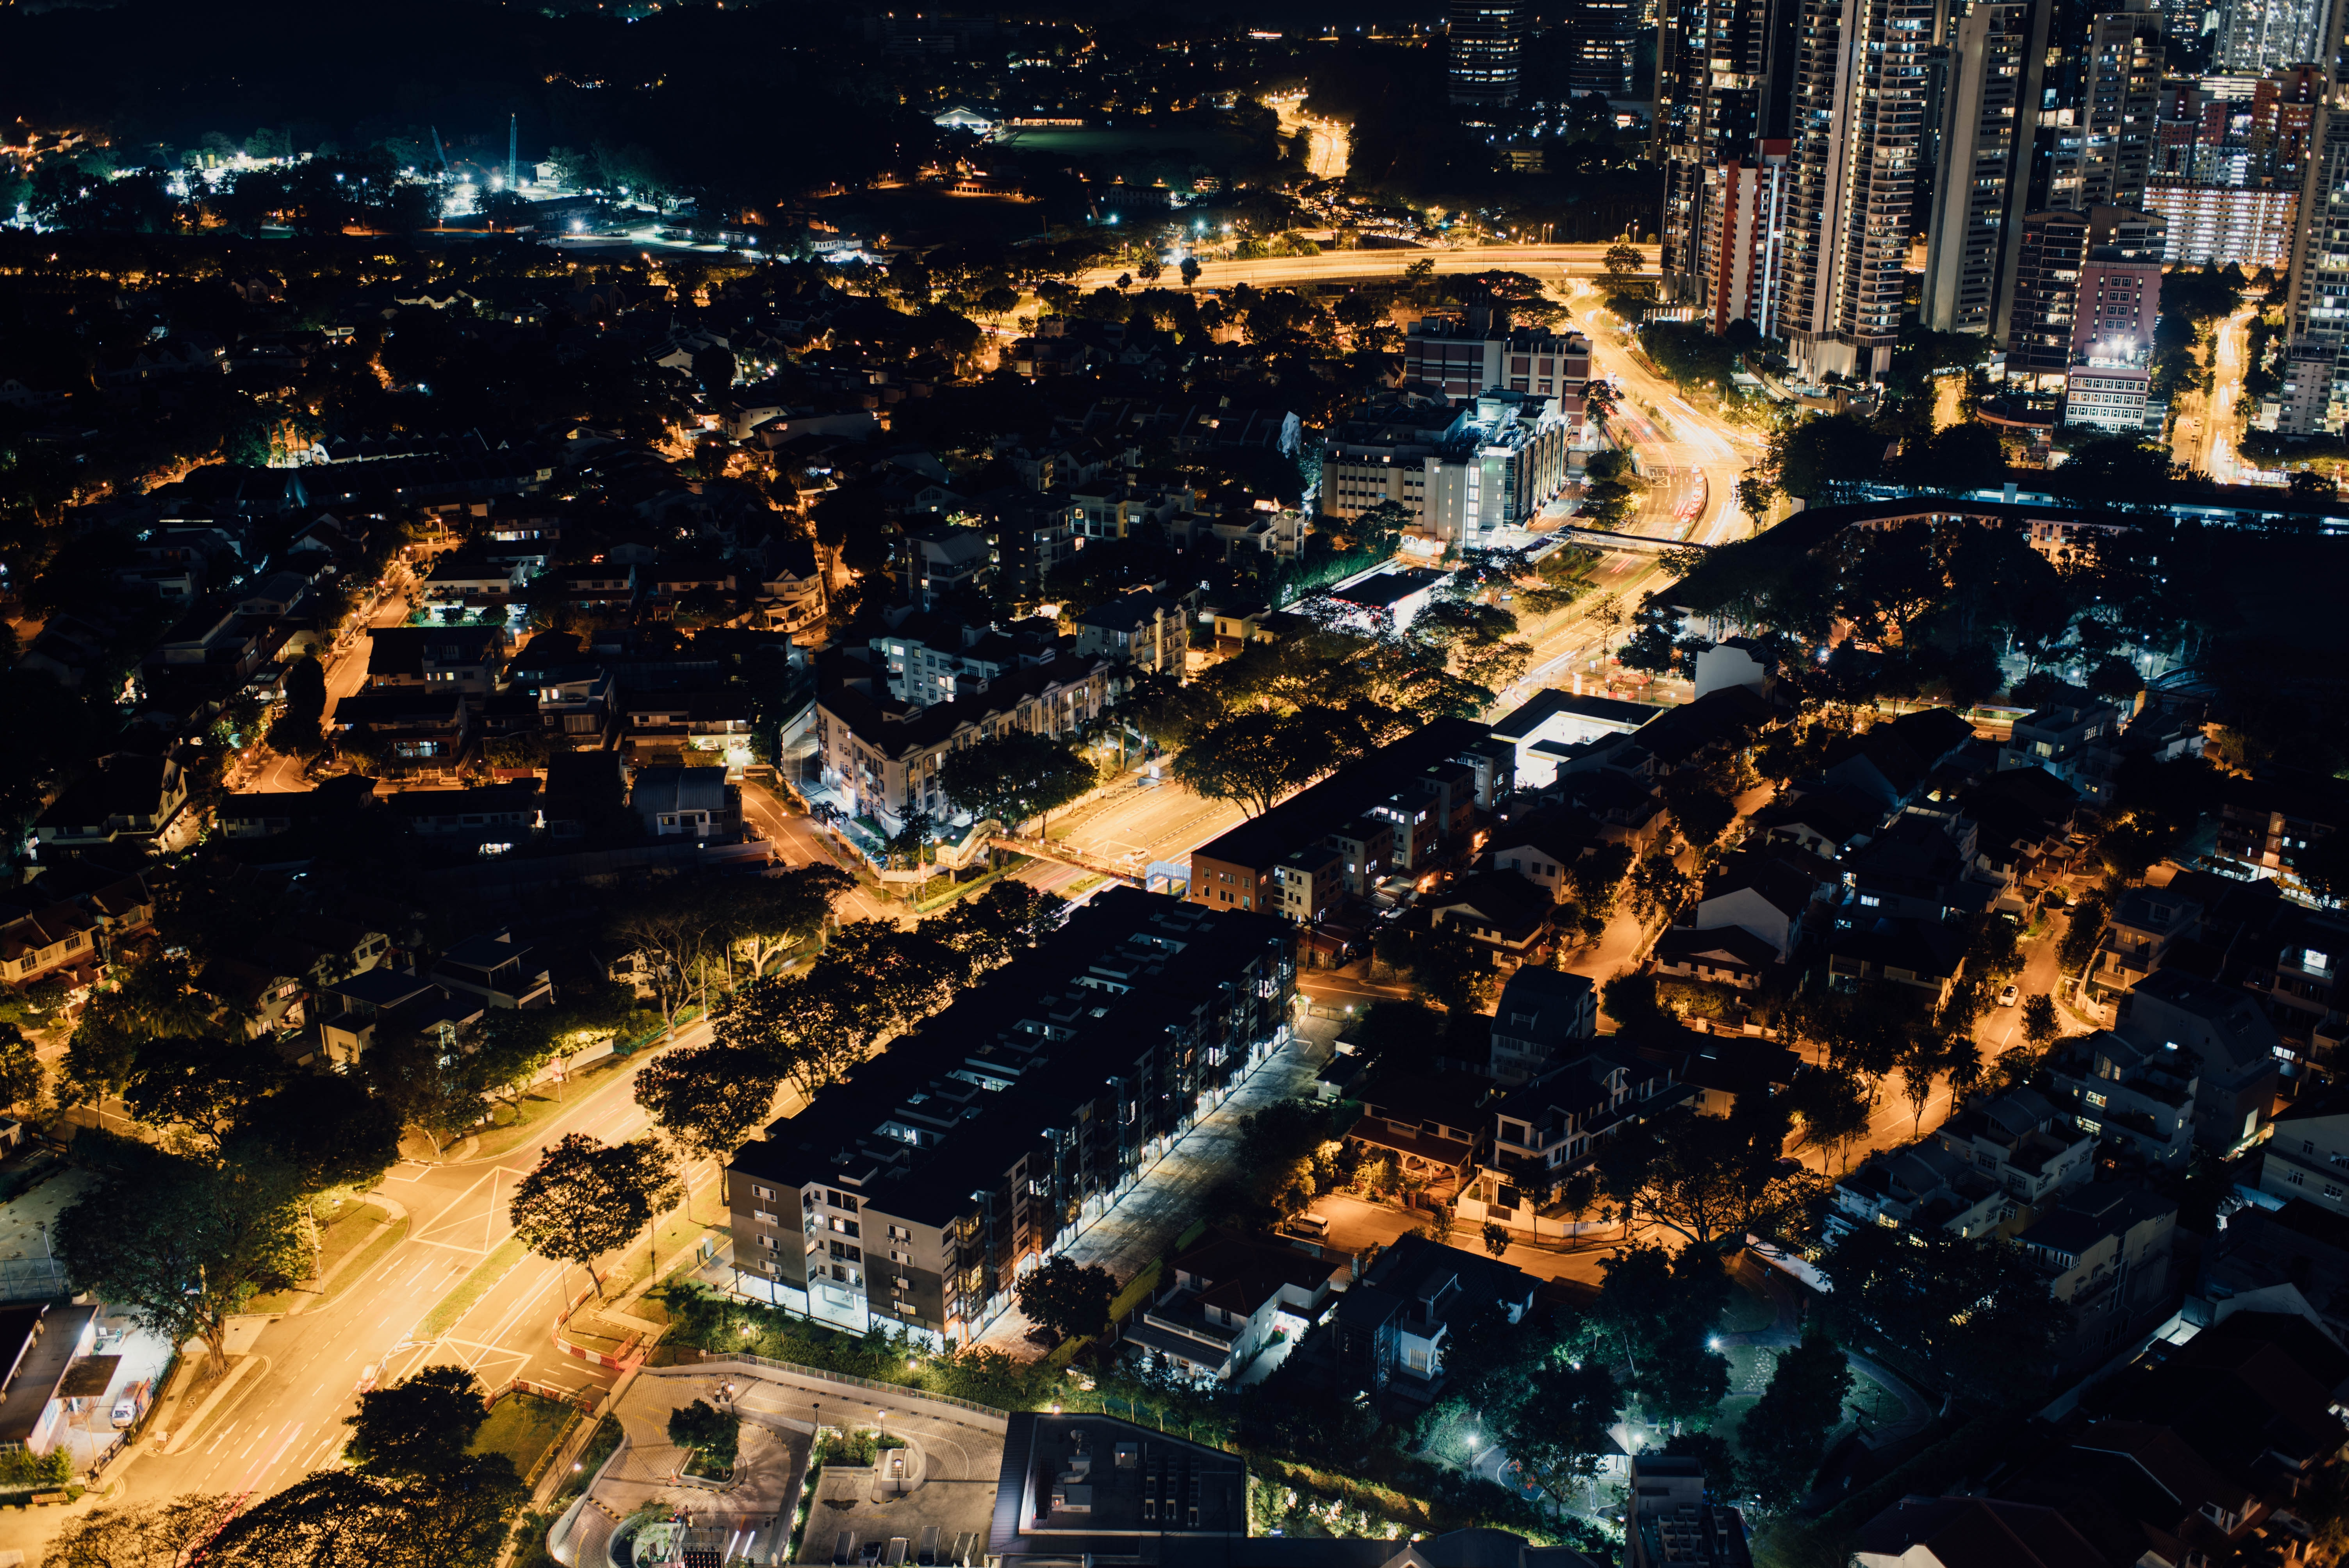 bird's-eye view photography of city buildings during nighttime